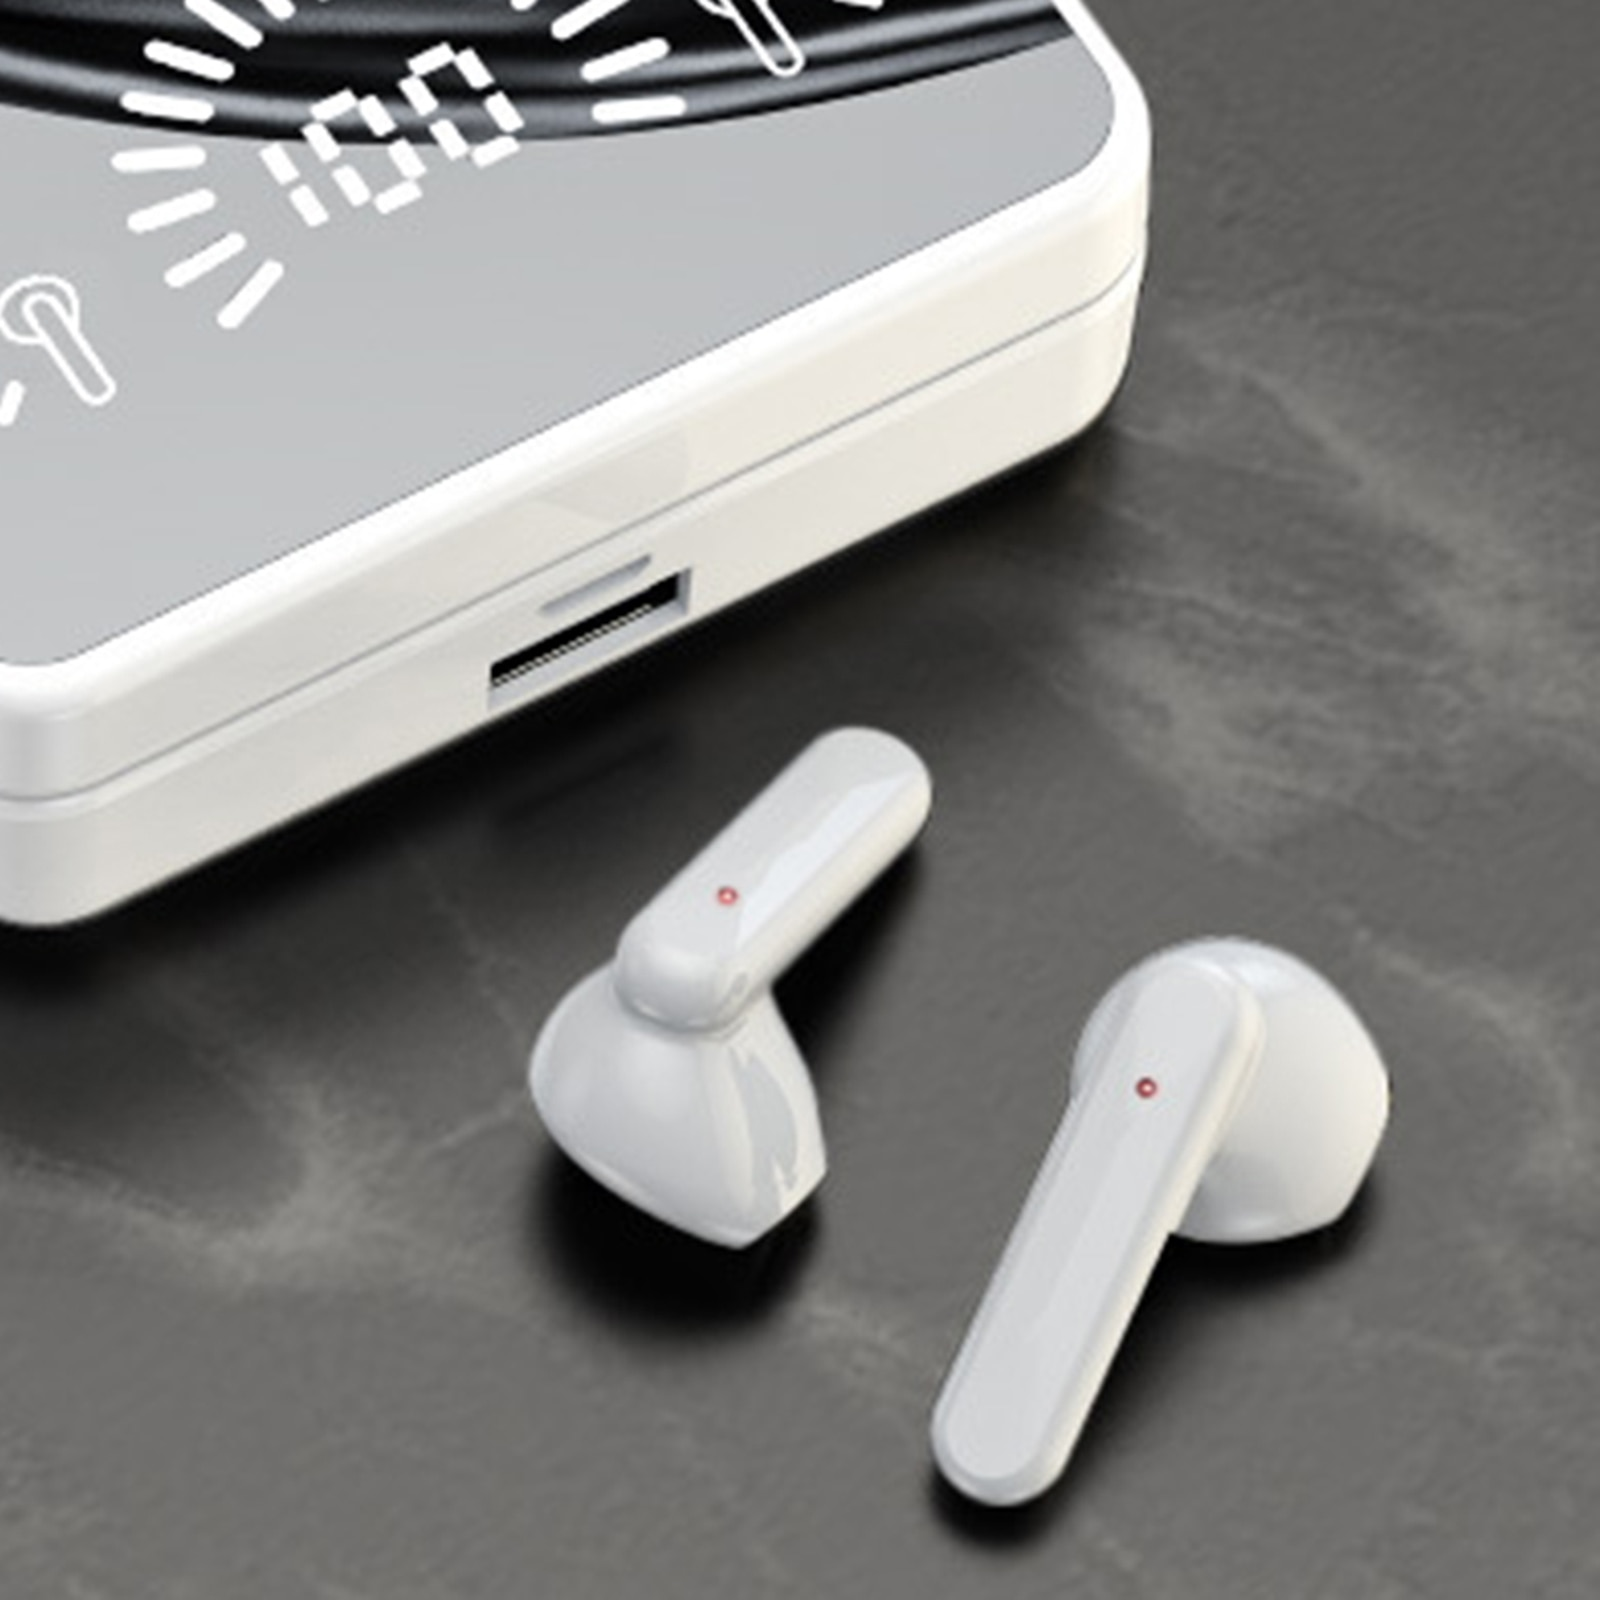 Tws Stylish Wireless Earbuds Hifi Led Display Mirror Sports Headsets Stereo Earbuds Waterproof Auto Pairing Stereo Headphone enlarge